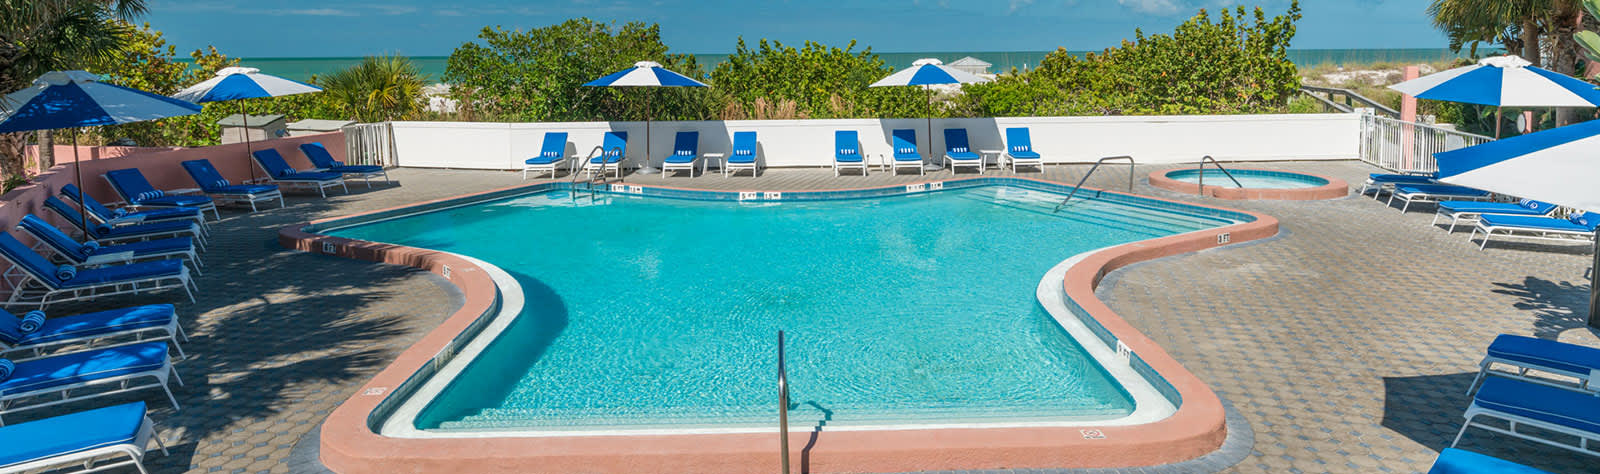 Beach House Suites, Florida - Offers